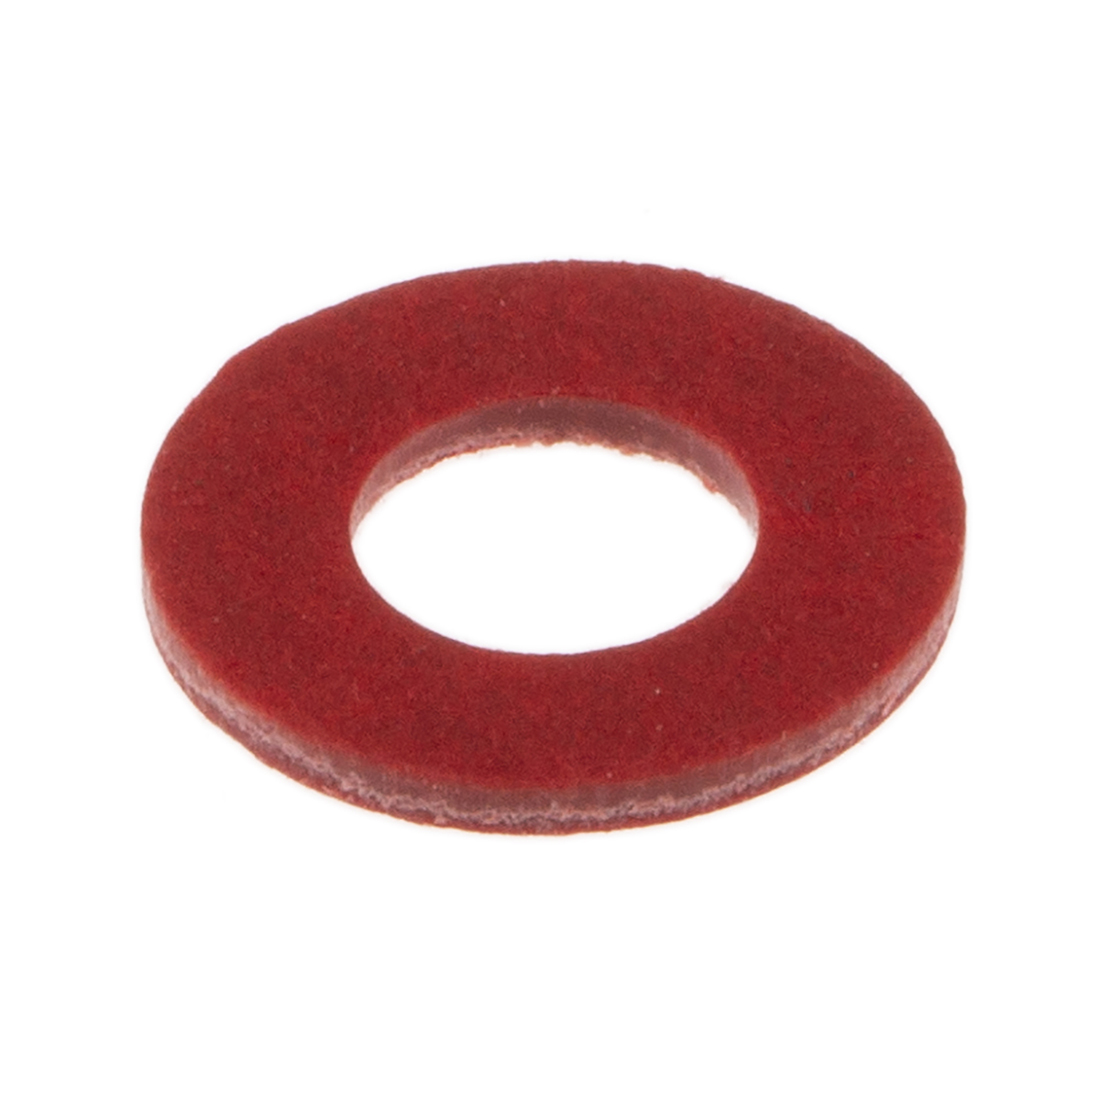 M8 Plain Vulcanised Fibre Tap Washer, 1.5mm Thickness - 100 Pack